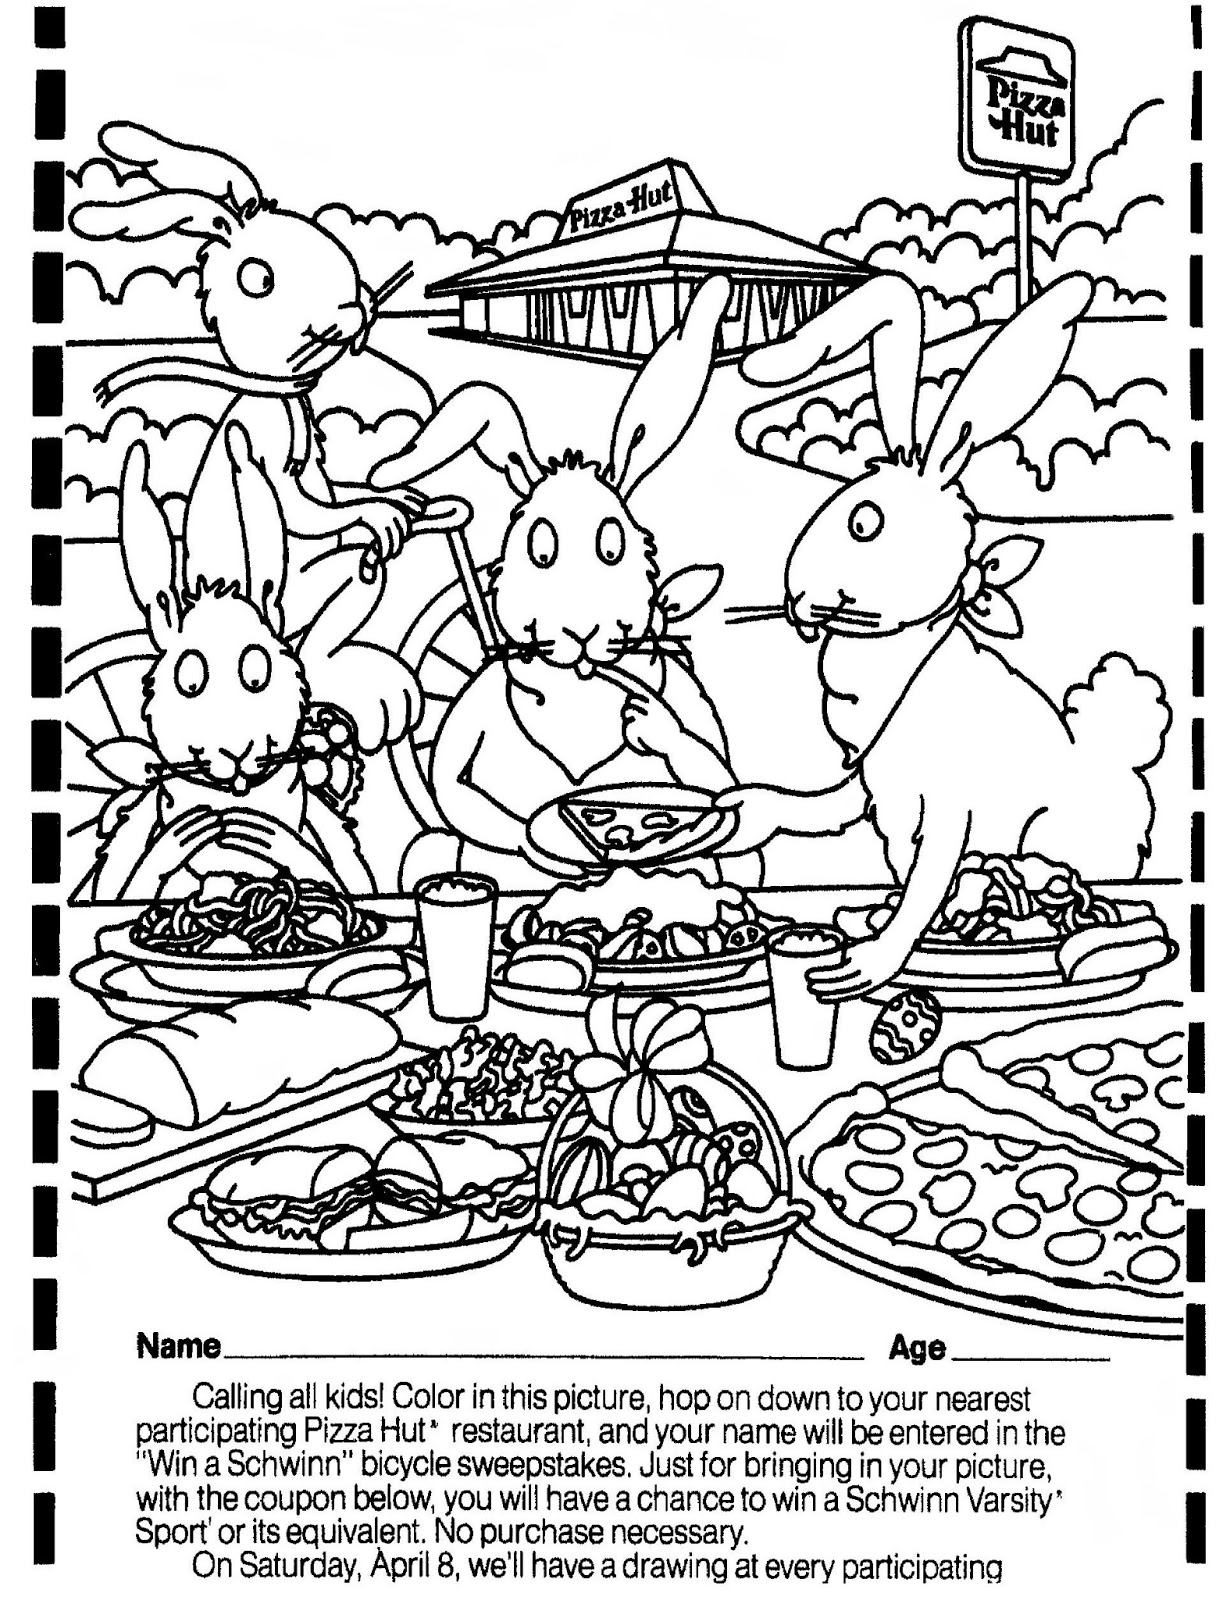 Pizza Hut Free Coloring Pages Pizza Hut Coloring Pages